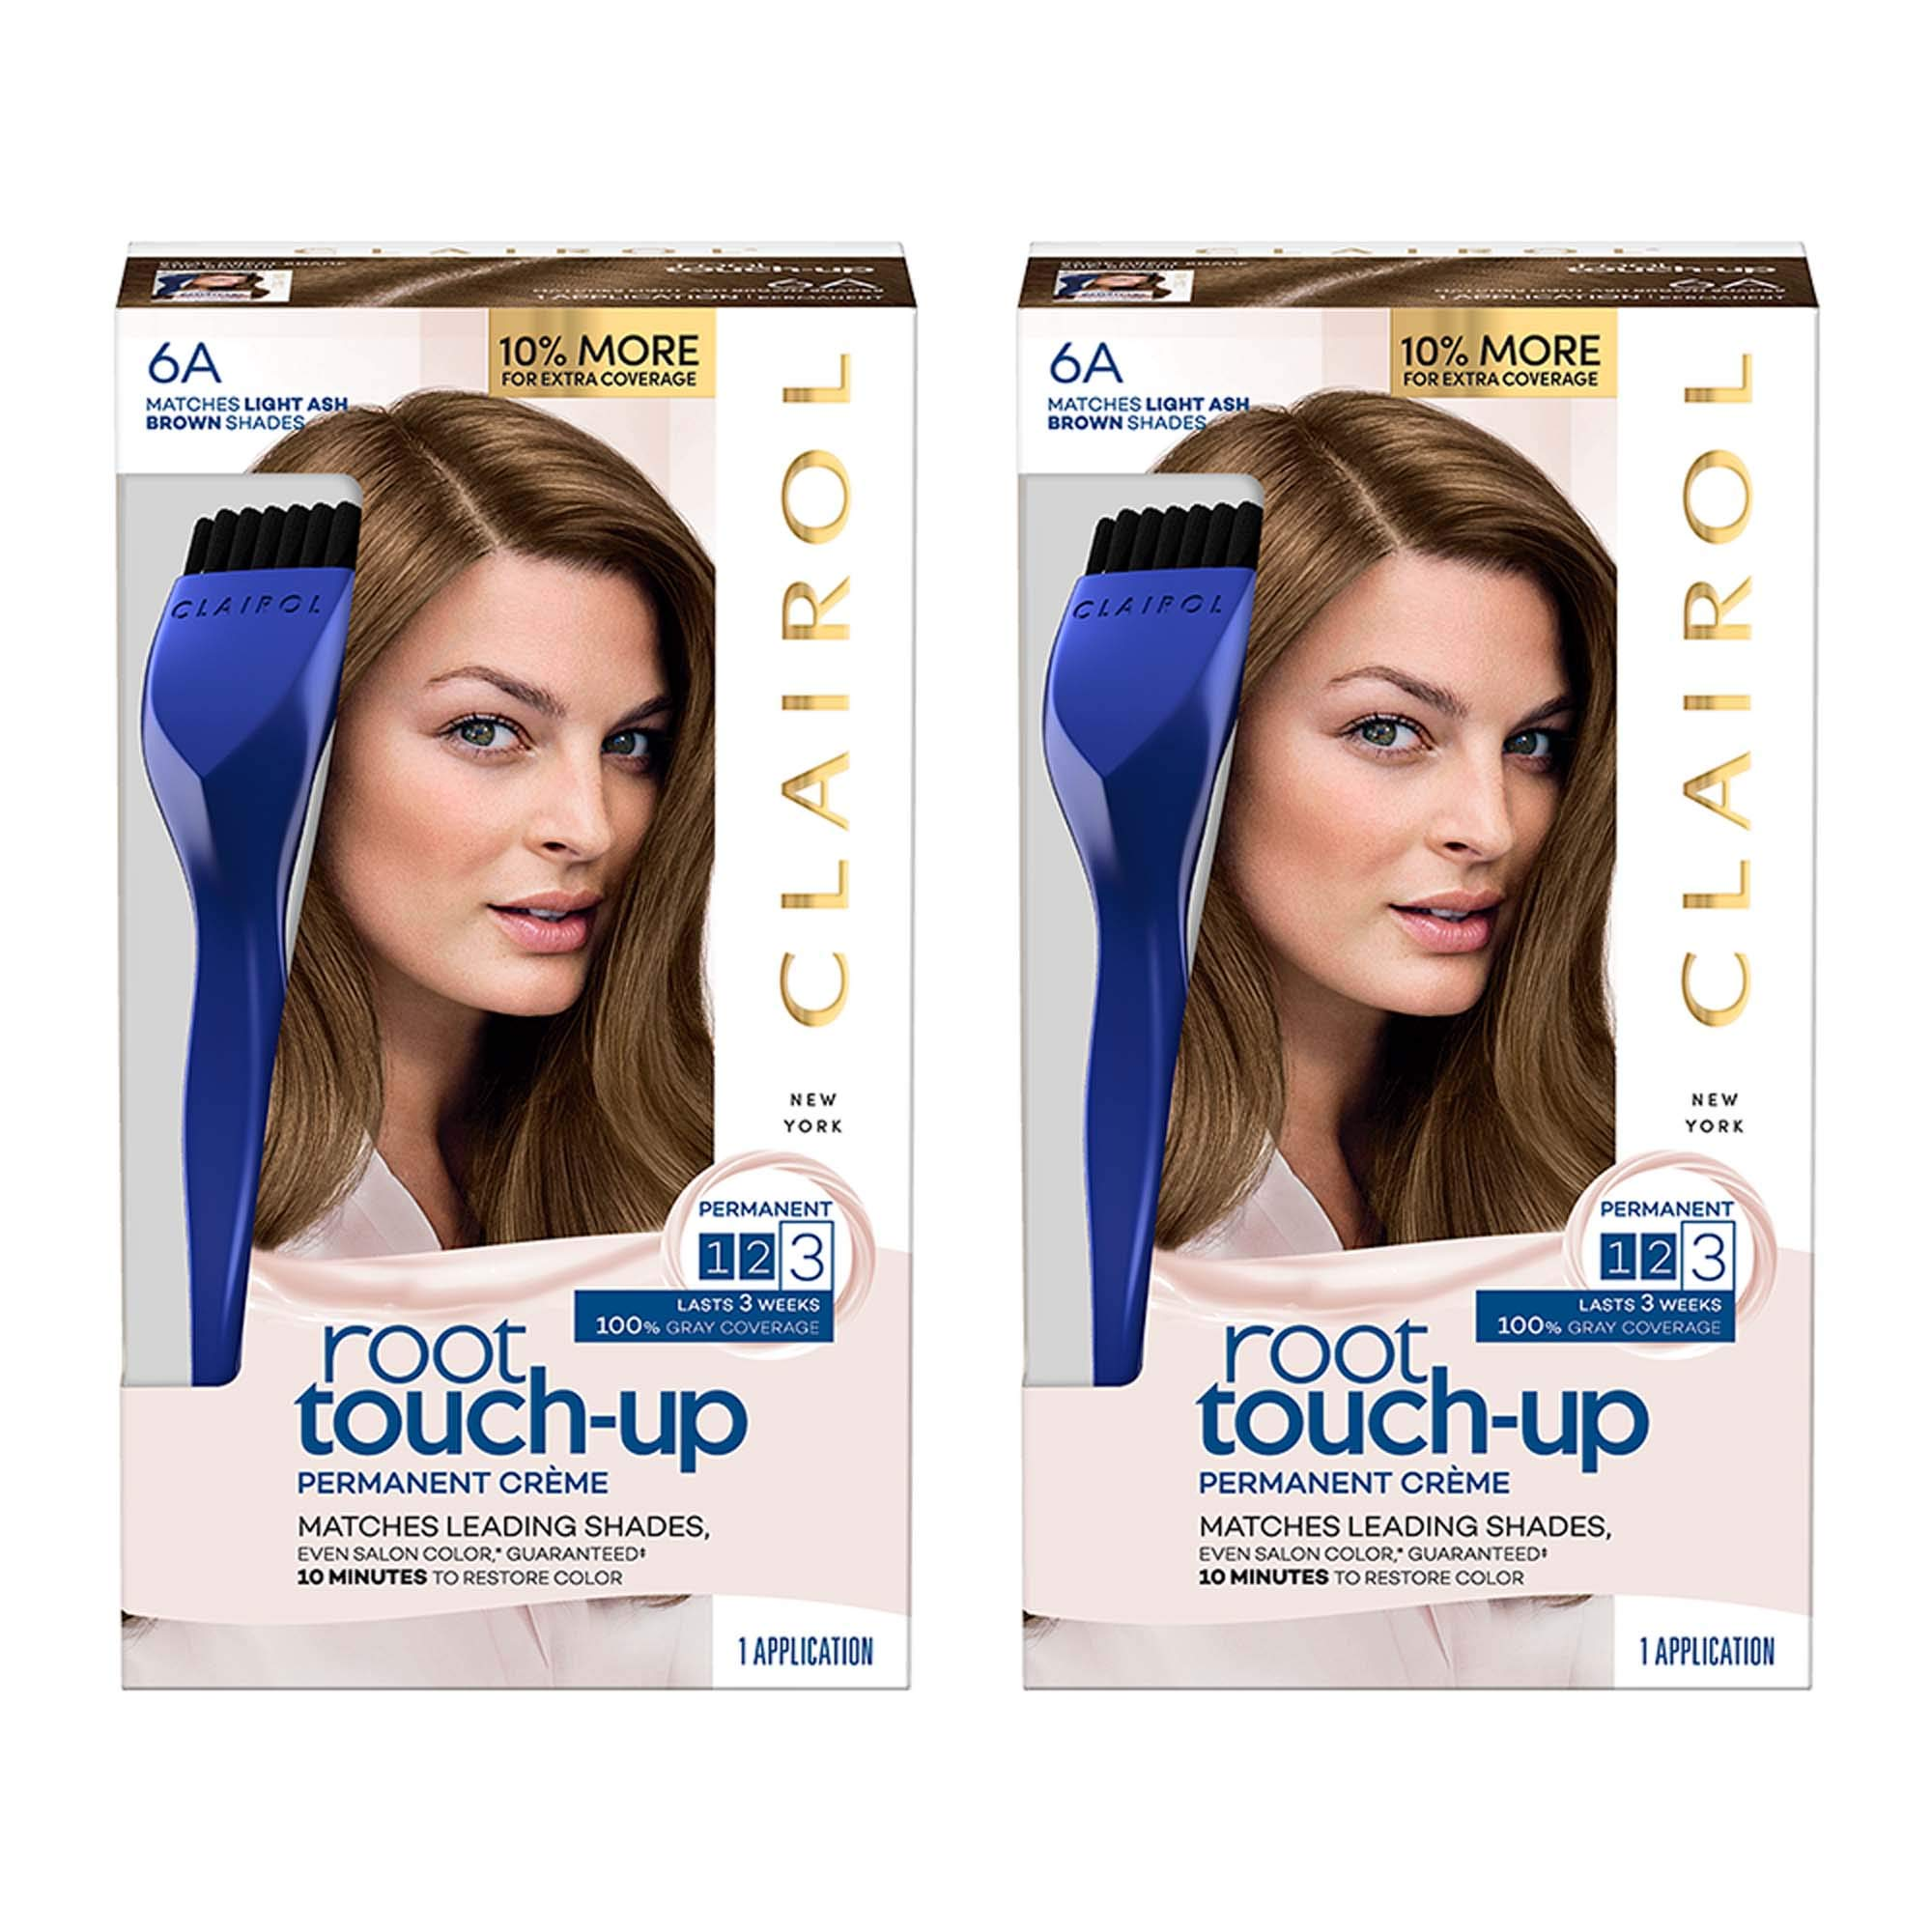 Clairol Nice 'N Easy Permanent Hair Color Root Touch-Up Kit, 6A Matches Light Ash Brown Shades (Pack of 2) (Packaging May Vary) by Clairol